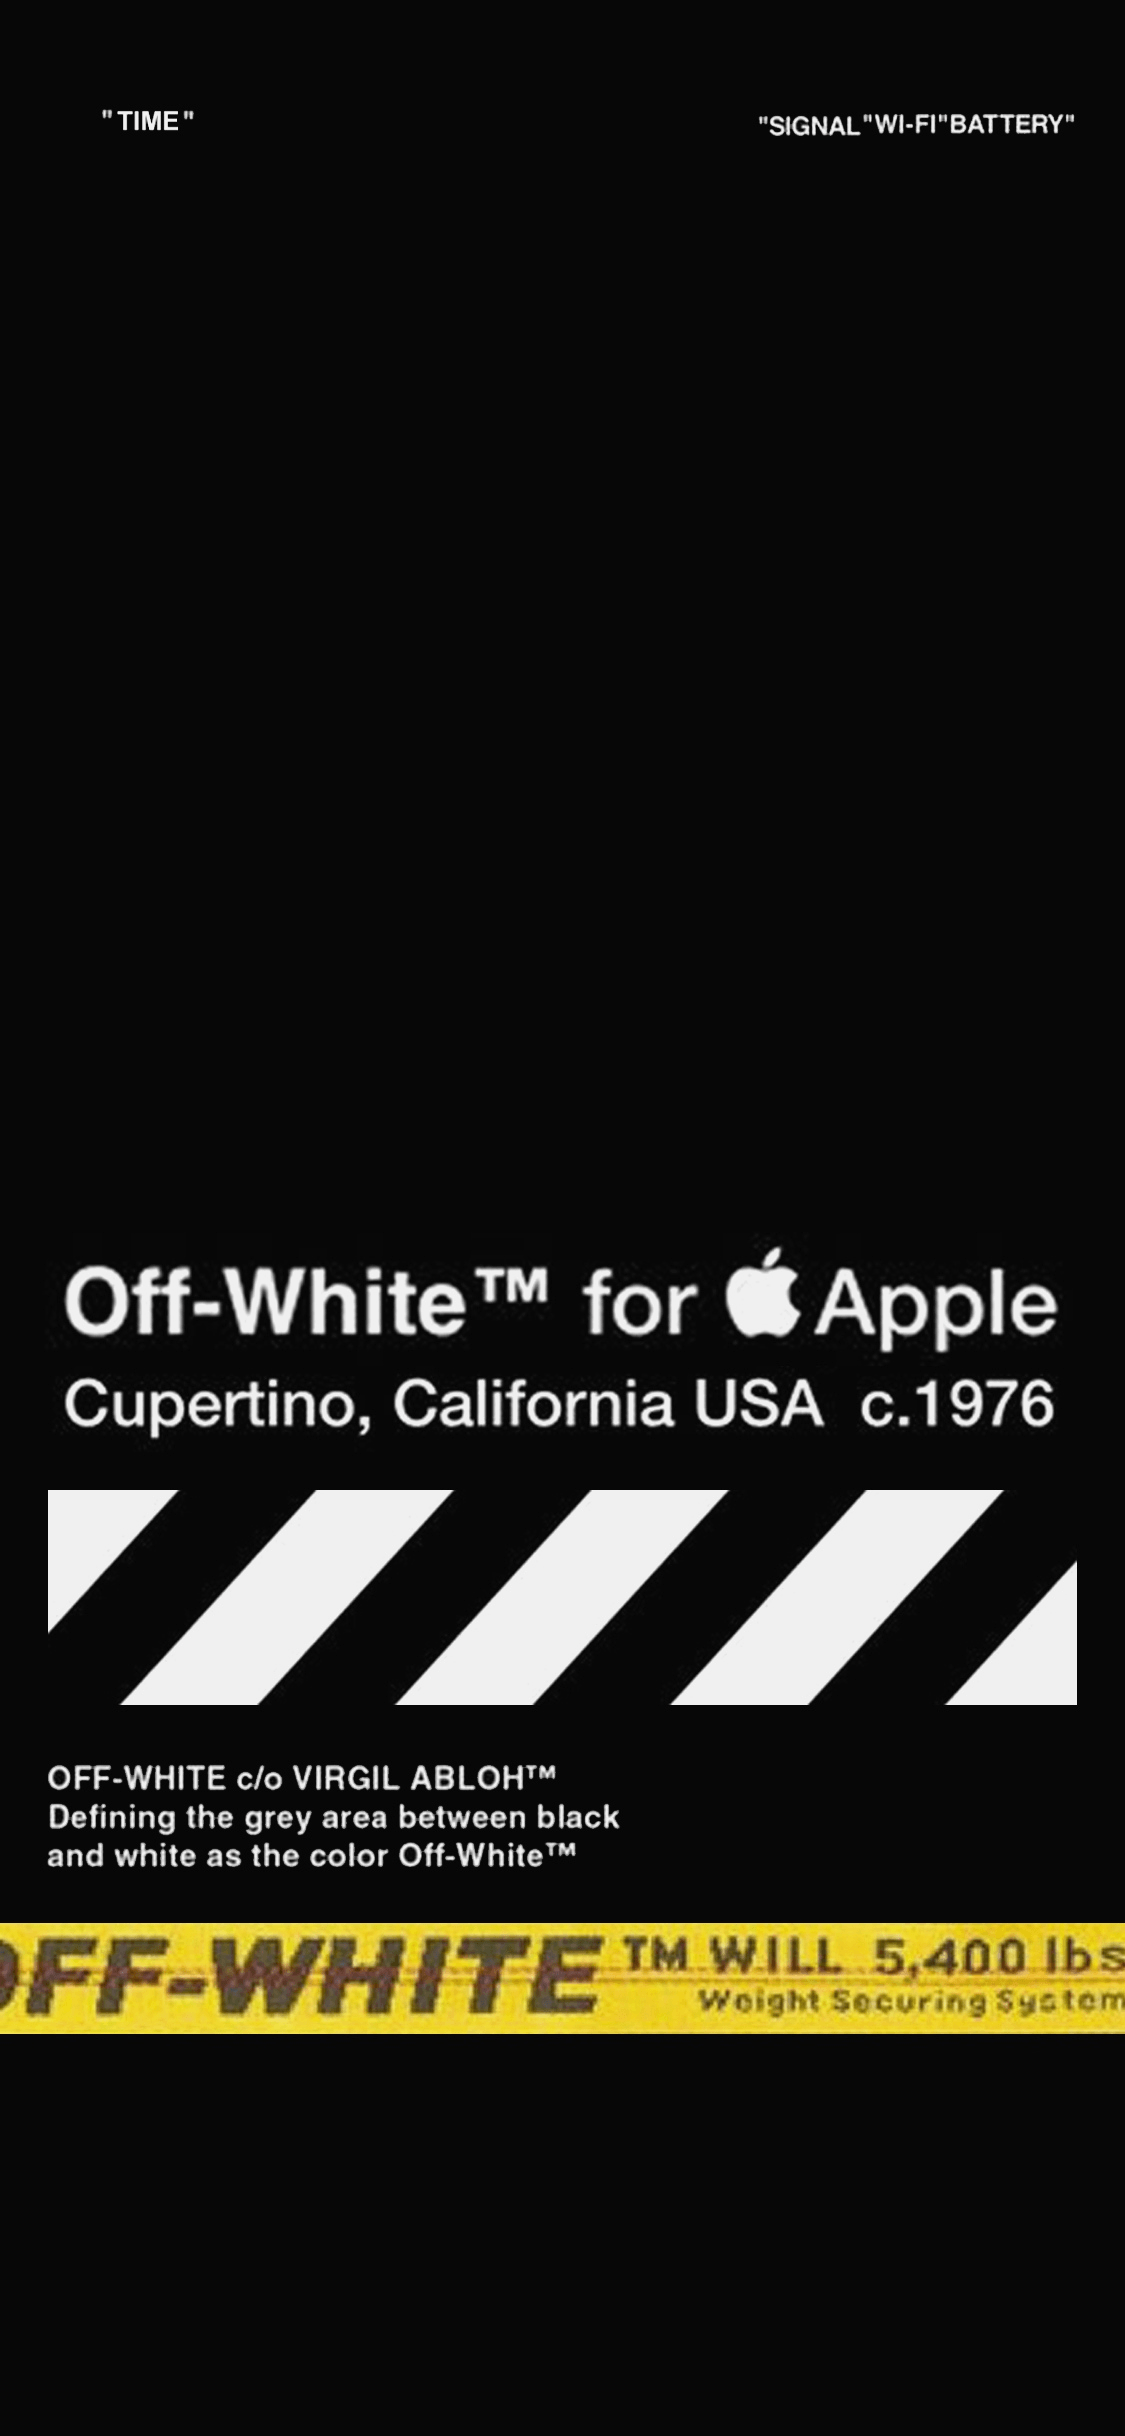 Off White 1 Iphone Wallpapers On Wallpaperdog In 2020